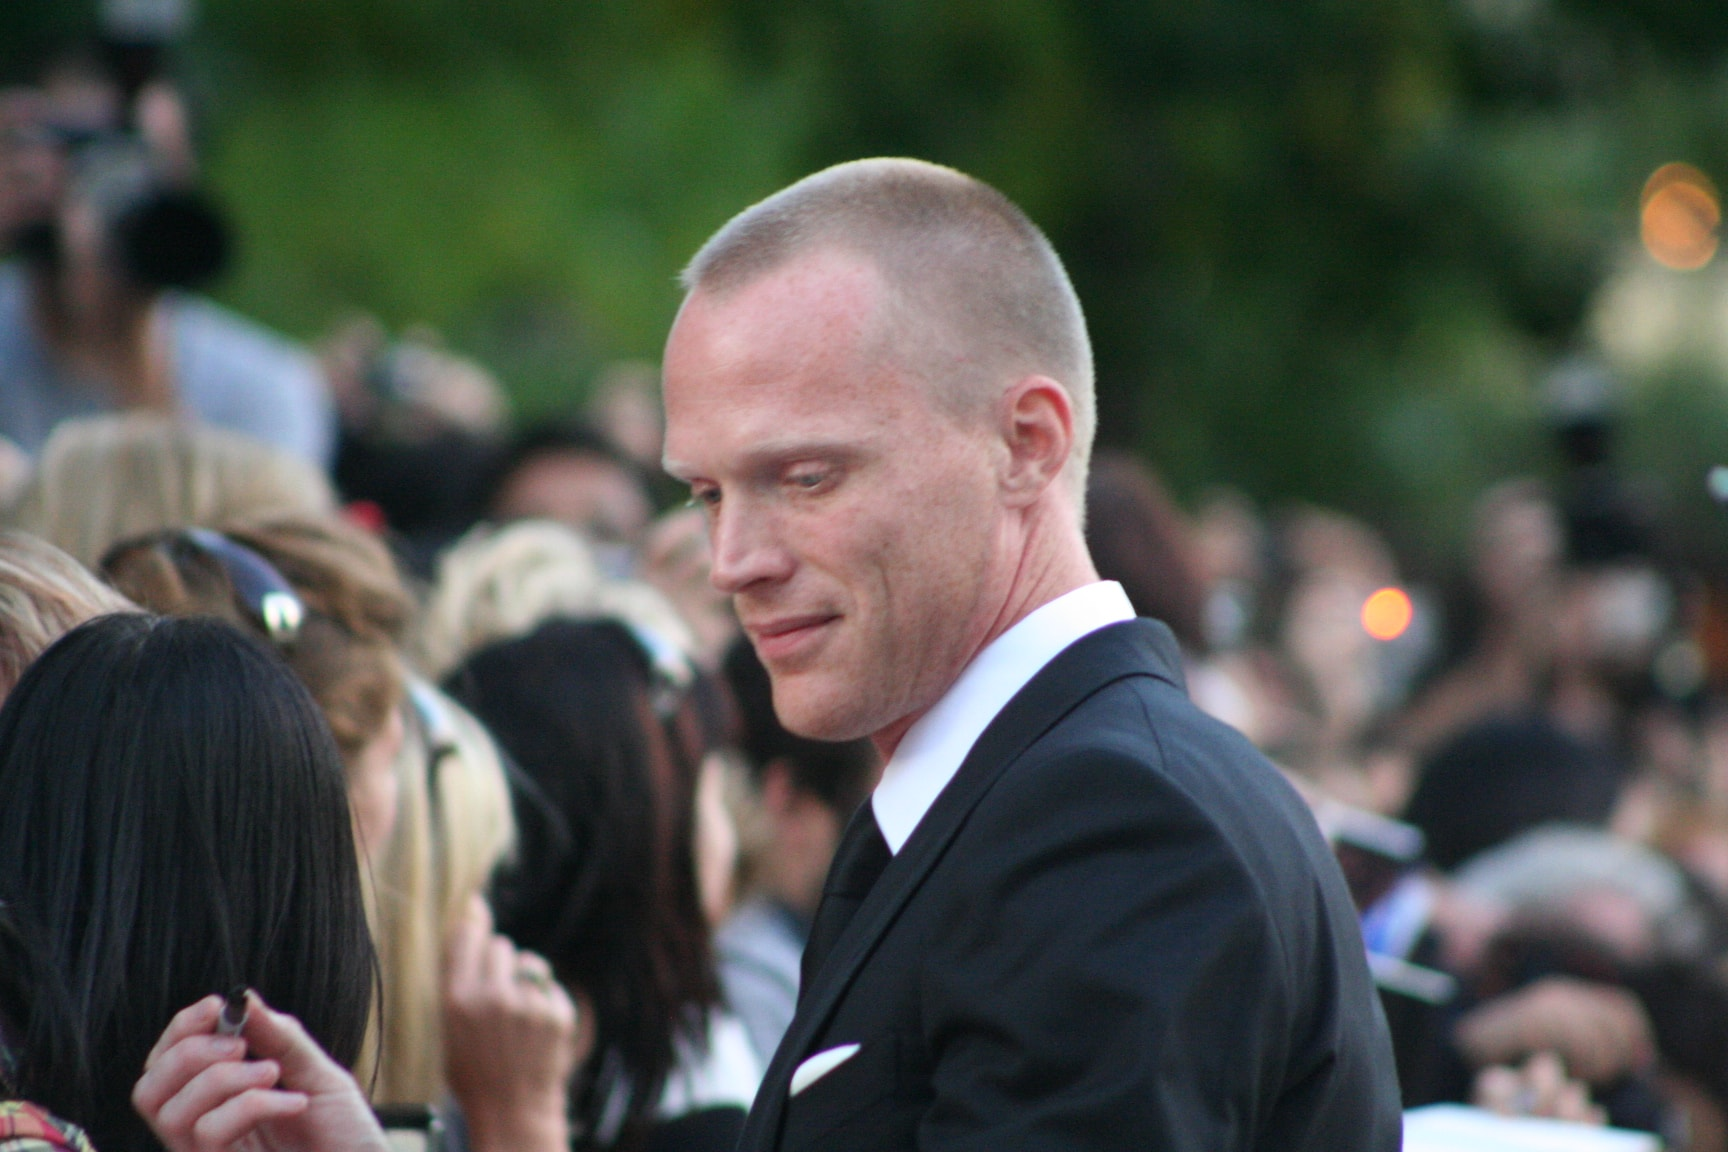 Paul Bettany Download